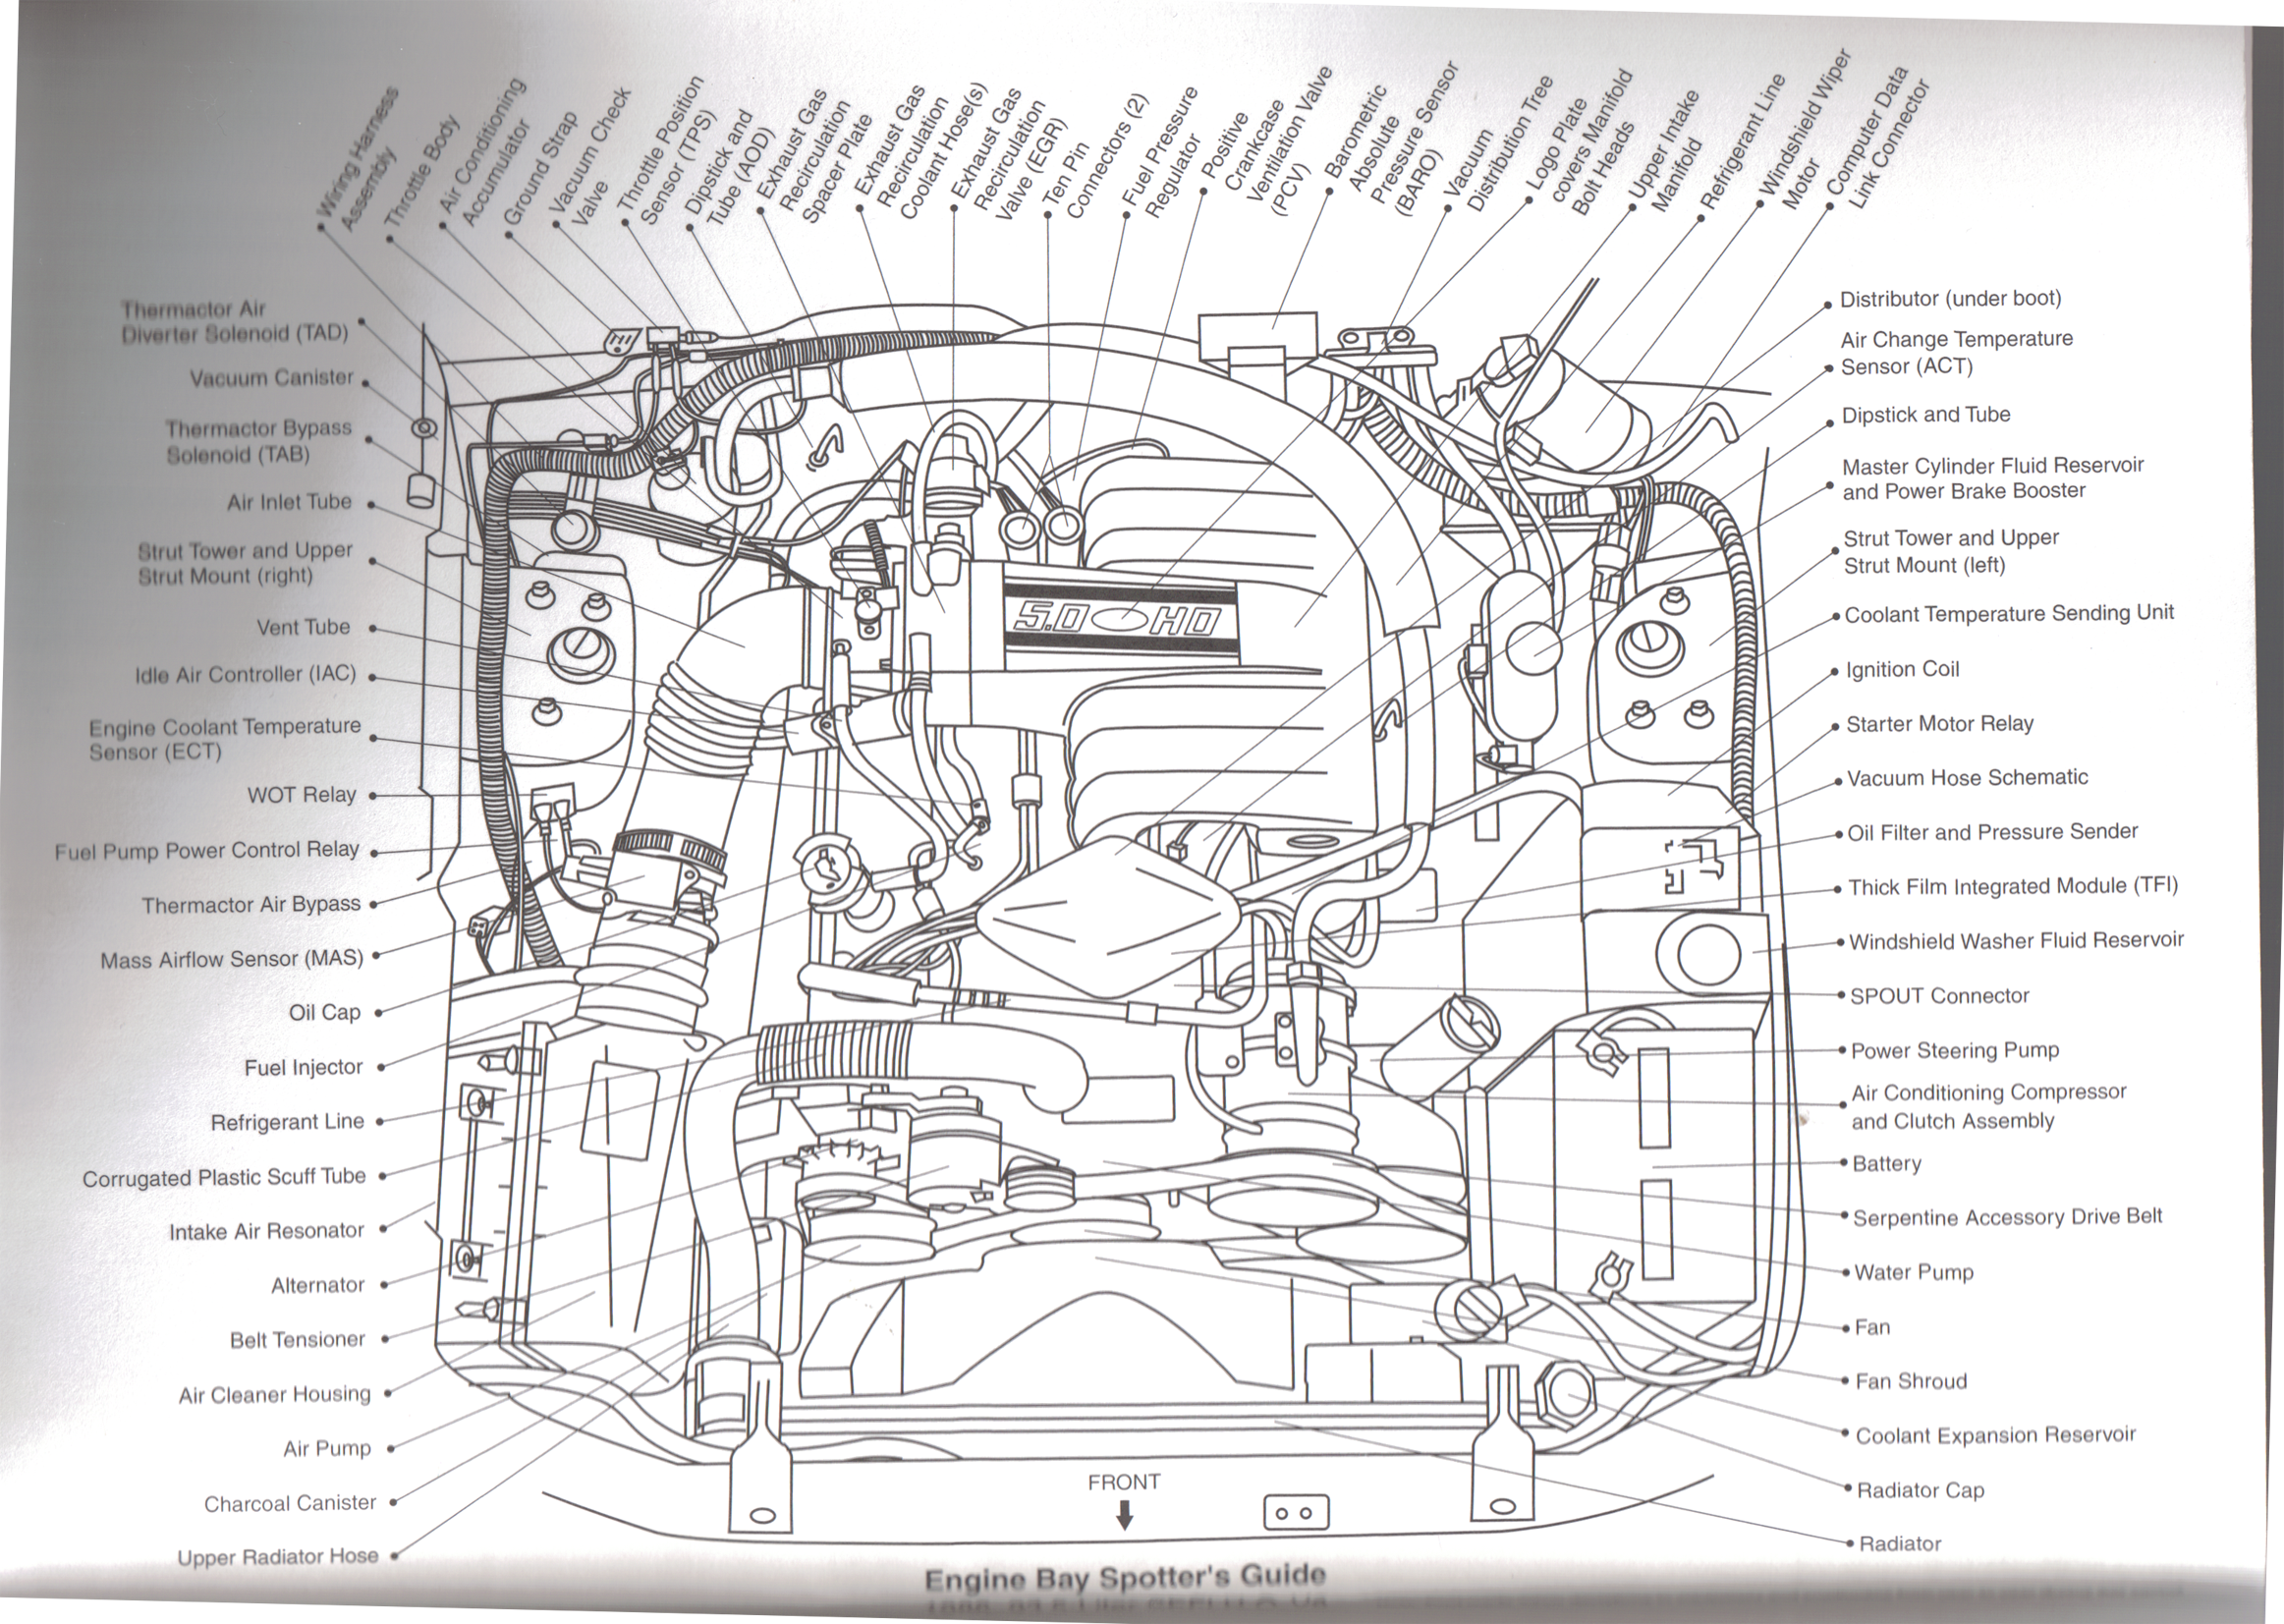 1987 1993 foxbody 5.0 sefi v8 engine part diagram everything you need to know about 1979 1993 foxbody mustangs fox body wiring harness diagram at virtualis.co